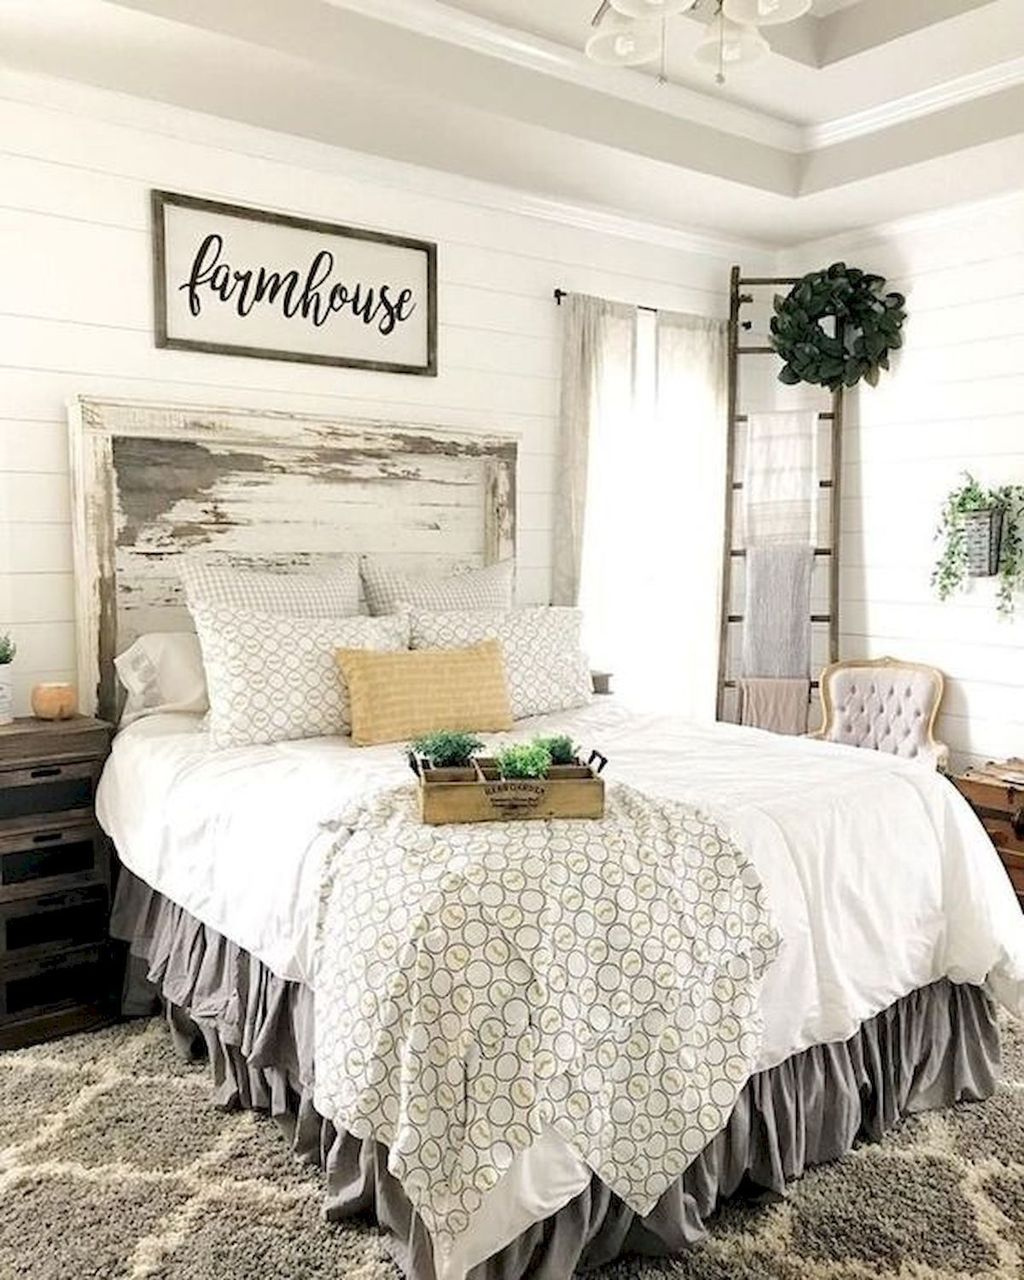 The Best Small Master Bedroom Design Ideas WIth Farmhouse Style 20